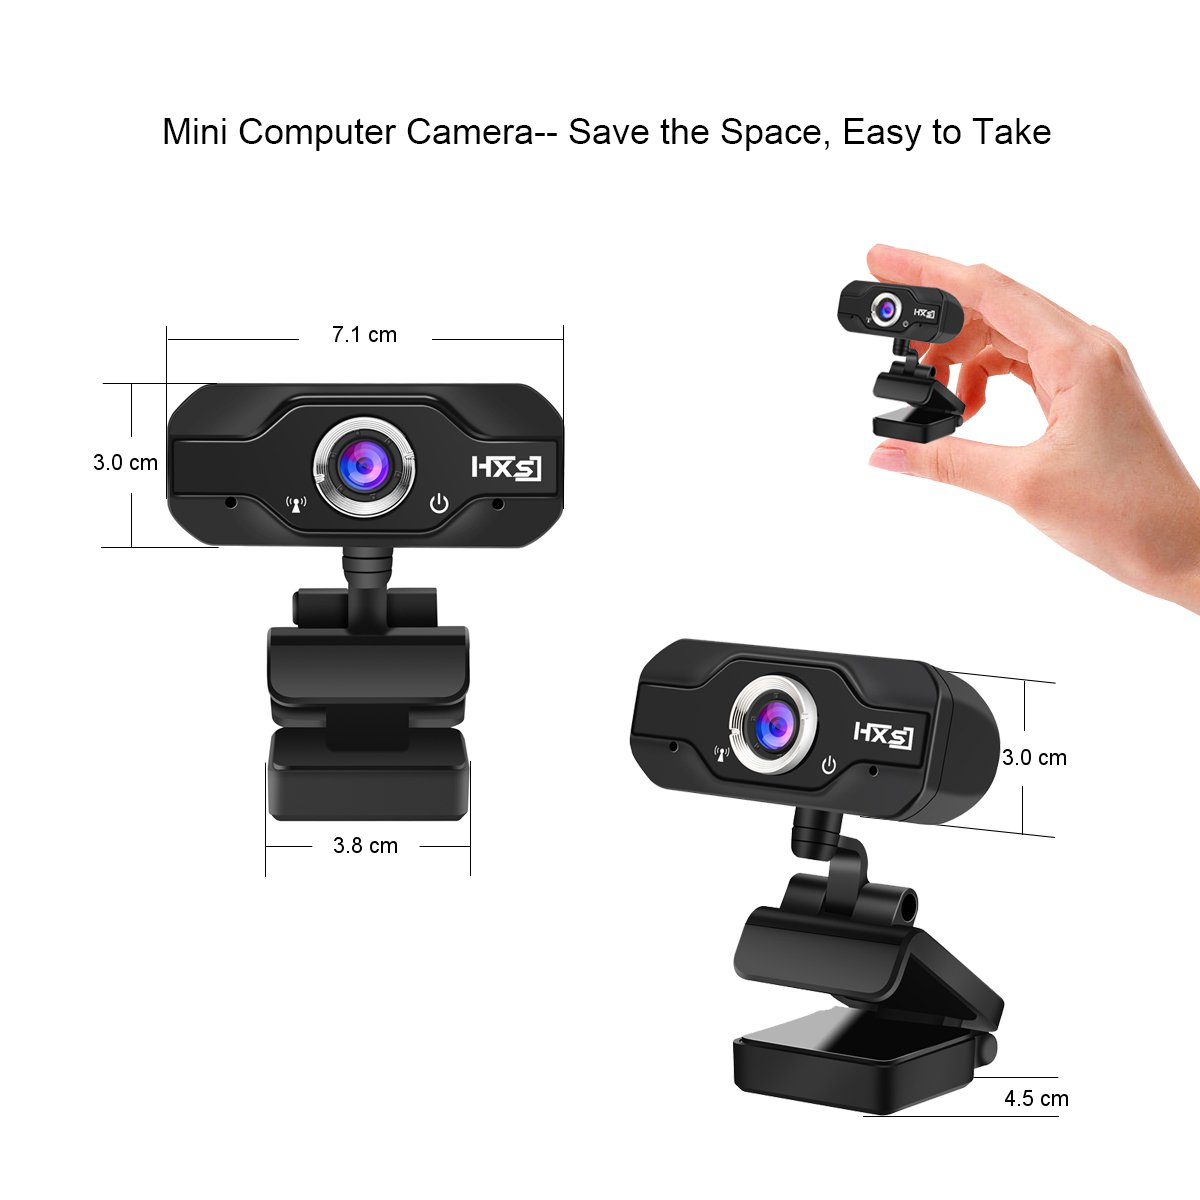 EIVOTOR 720P HD Laptop Webcam USB Mini Computer Camera with Built-in Microphone for Laptops and Desktop 360-Degree Swive